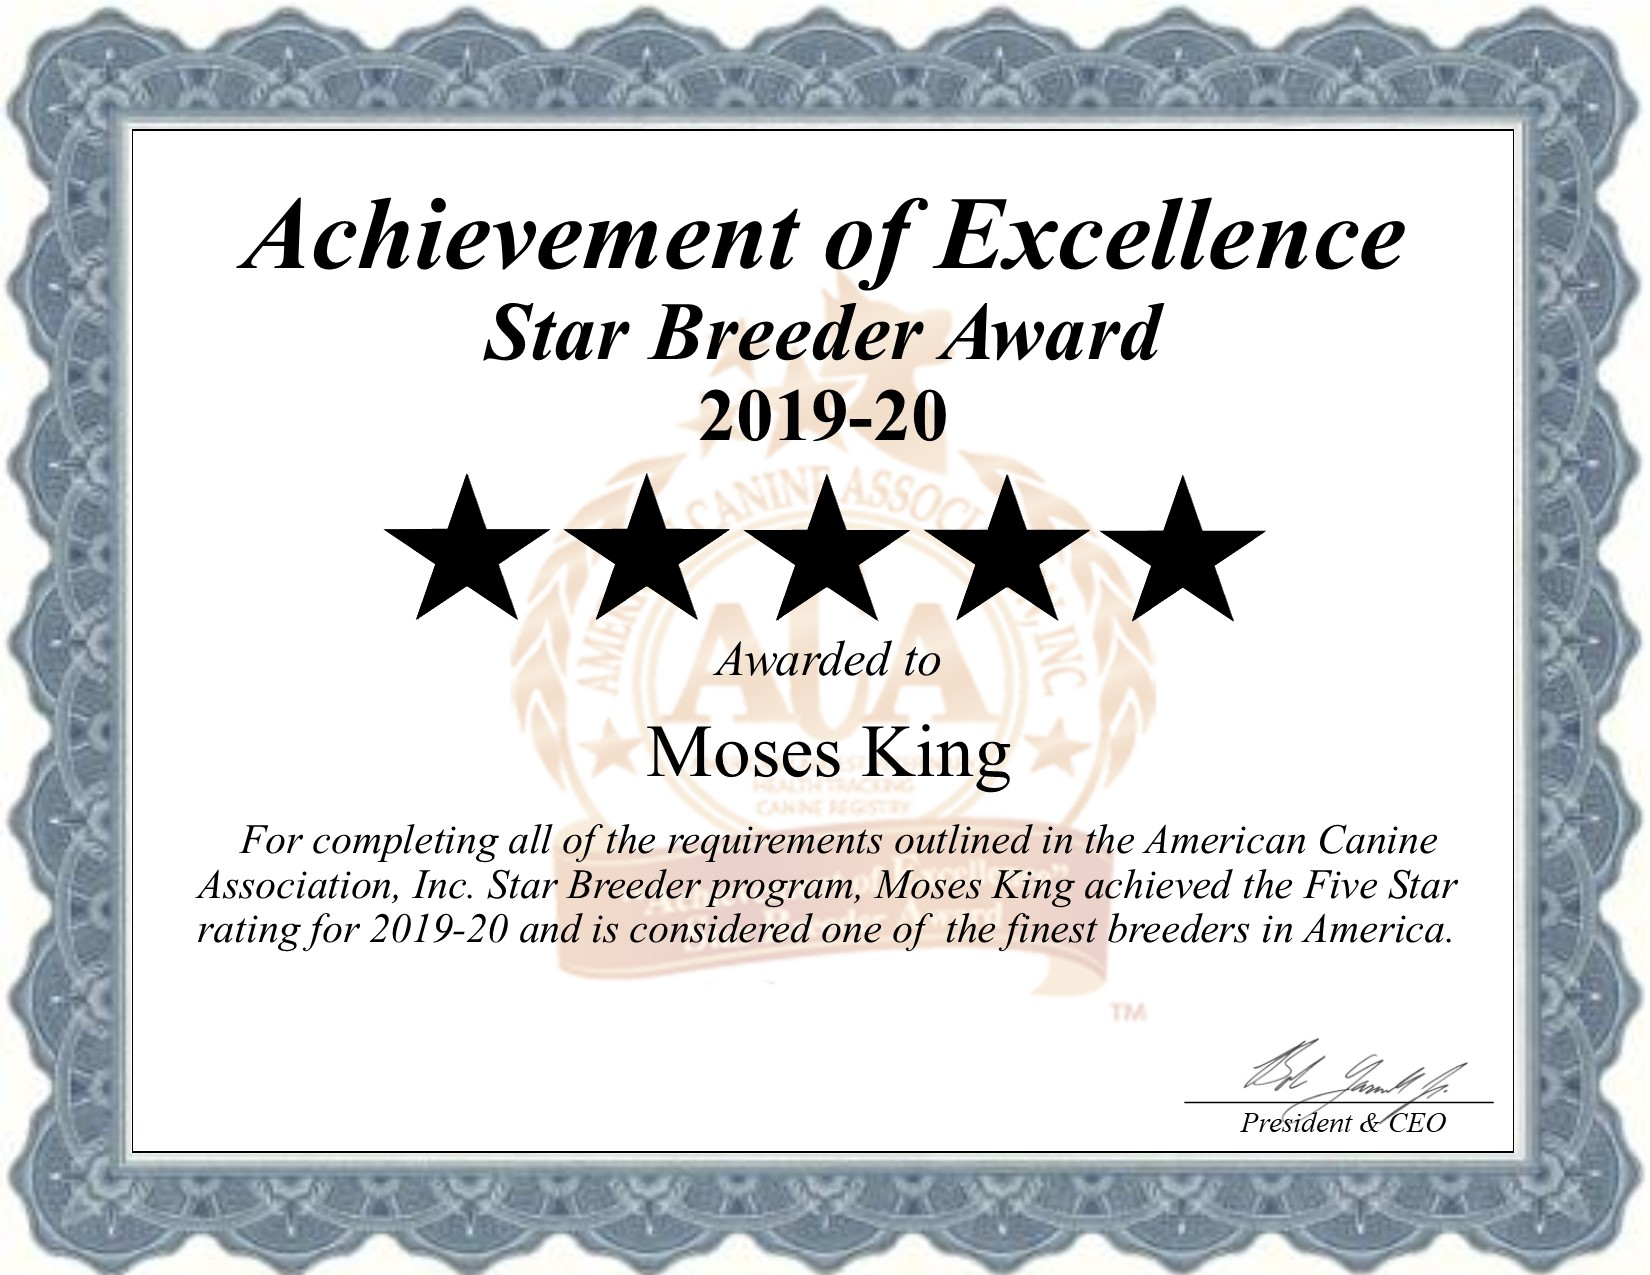 moses, king, dog, breeder, certificate, moses-king, dog-breeder, christiana, pa, pennsylvania, dogbreeder, kennel, reviews, customer, star, starbreeder, 5, five, USDA, puppy, puppies, ACA, inspection, inspections, reports, mill, puppymill, mills